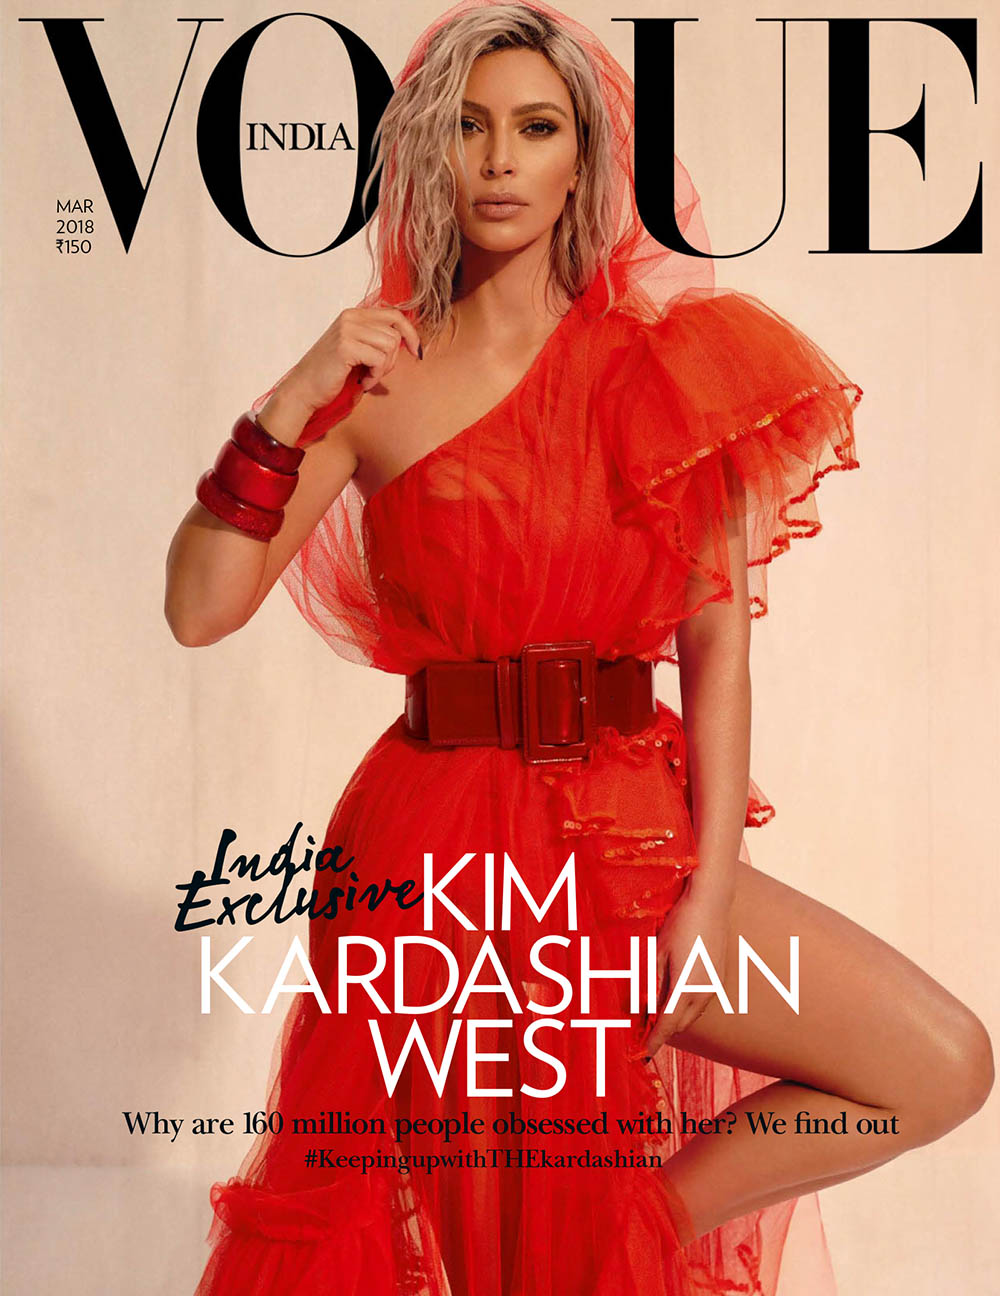 Kim Kardashian West covers Vogue India March 2018 by Greg Swales